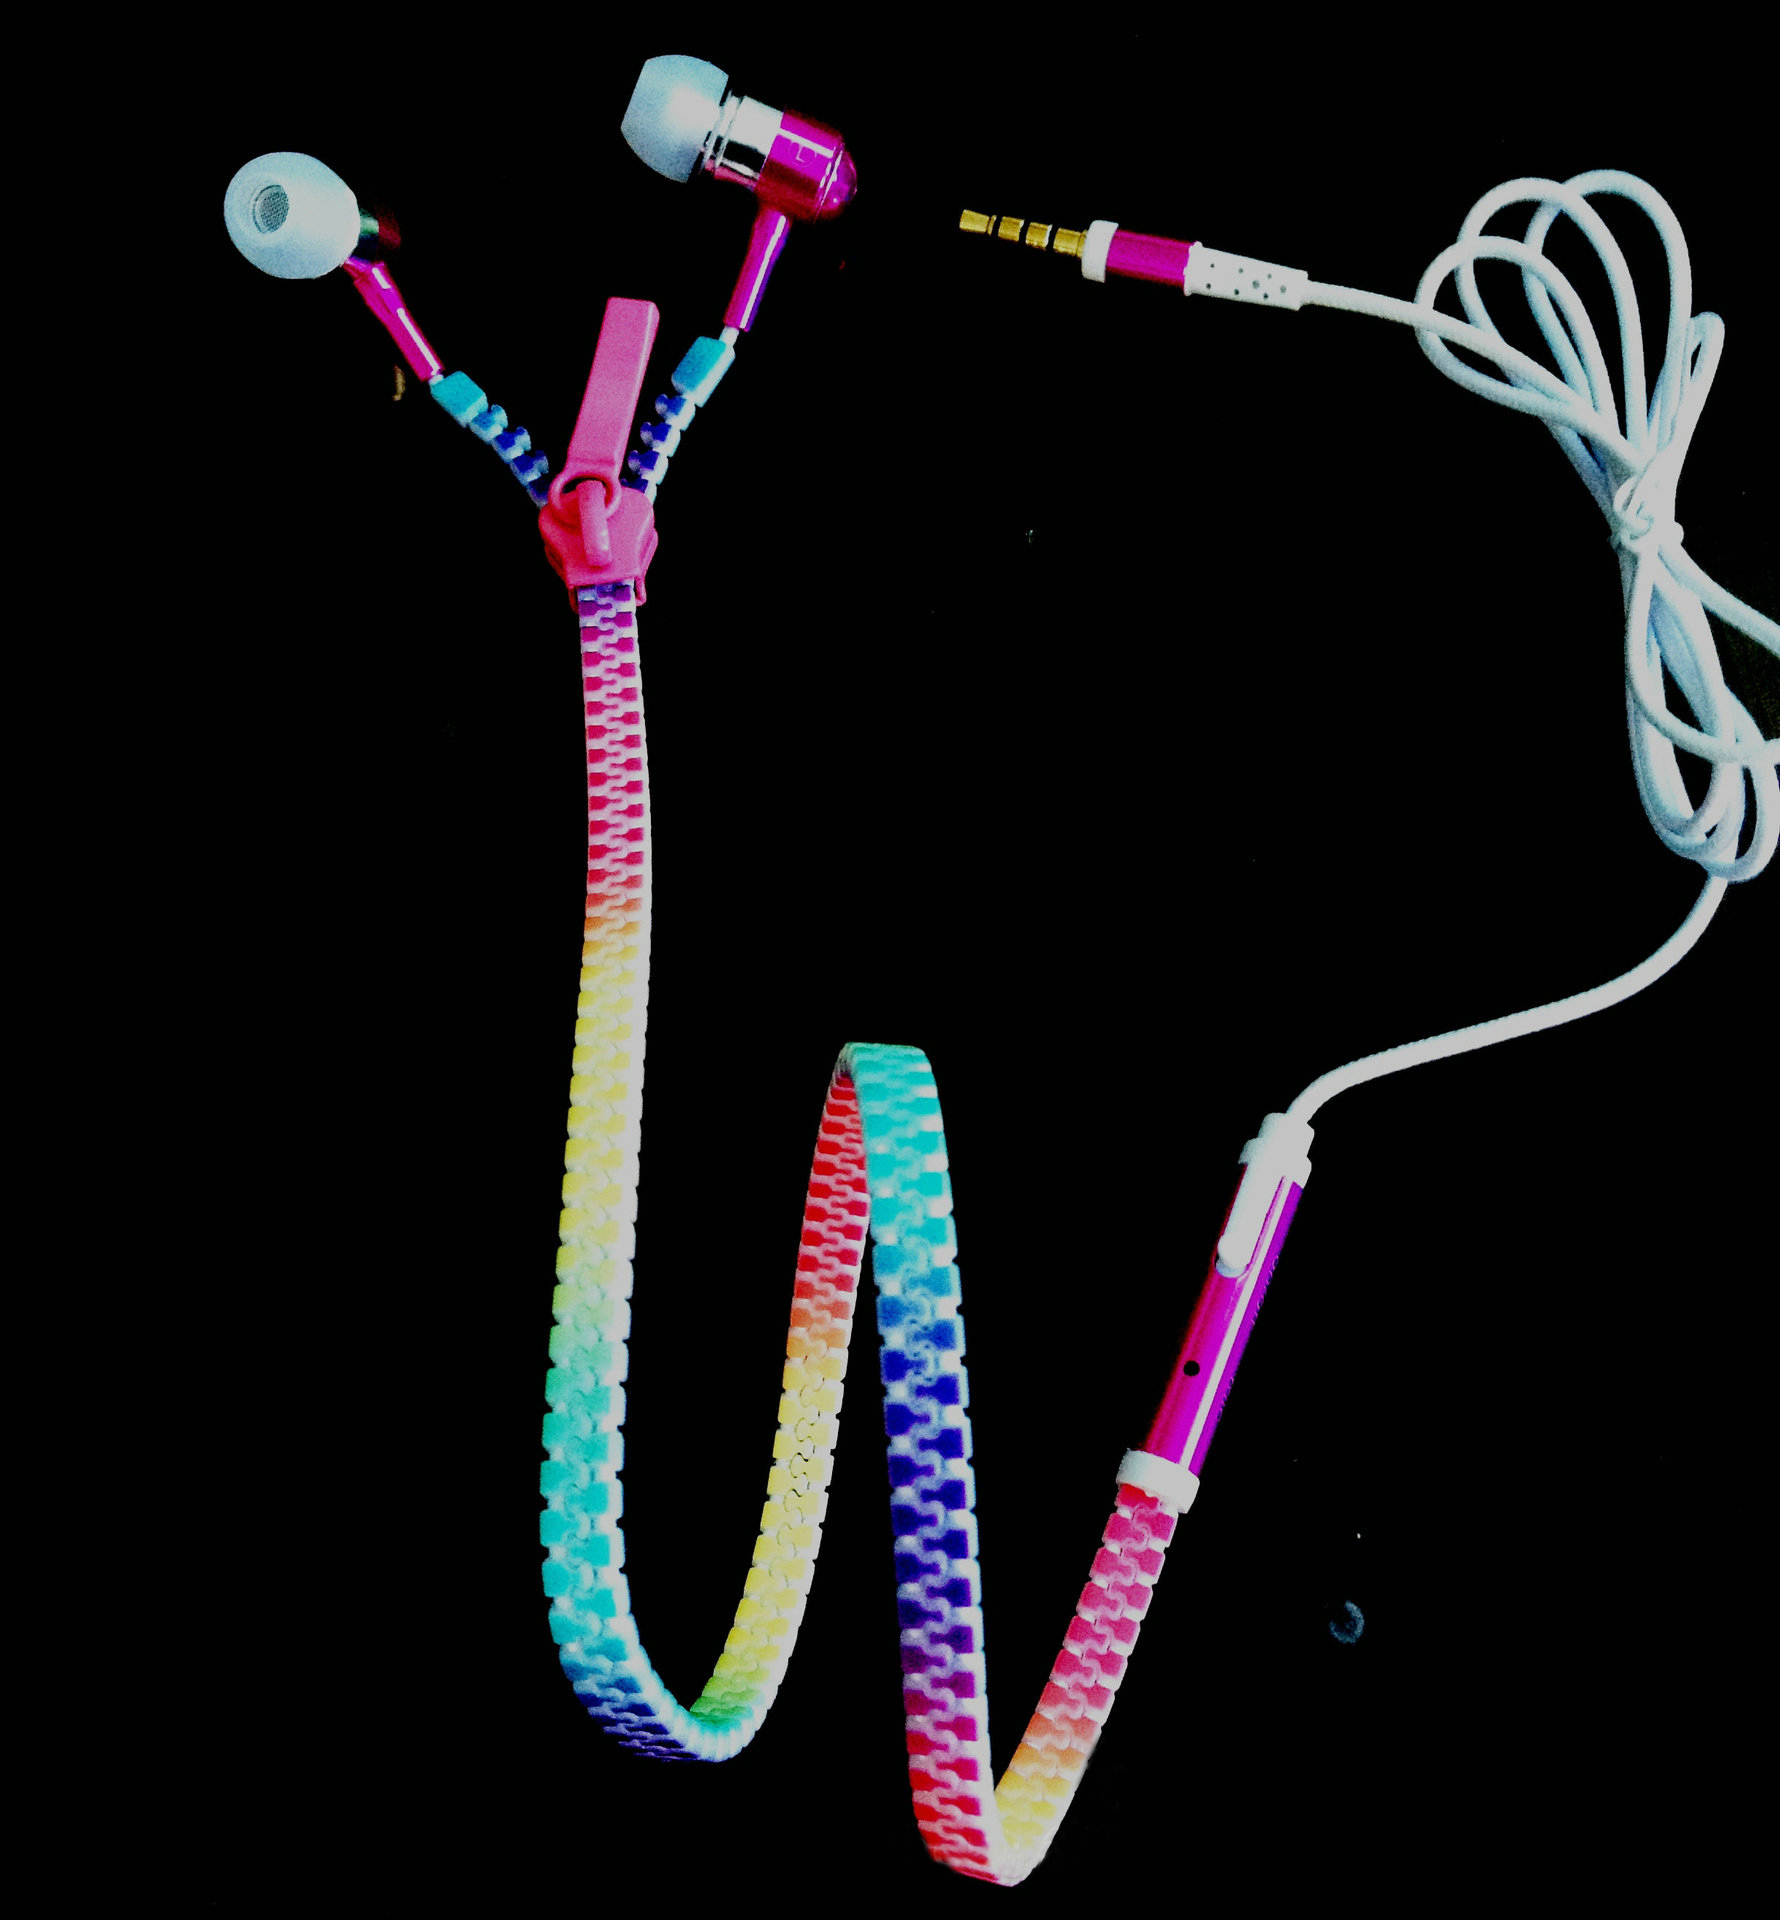 Cool Colorful Glow-In-The-Dark Zip